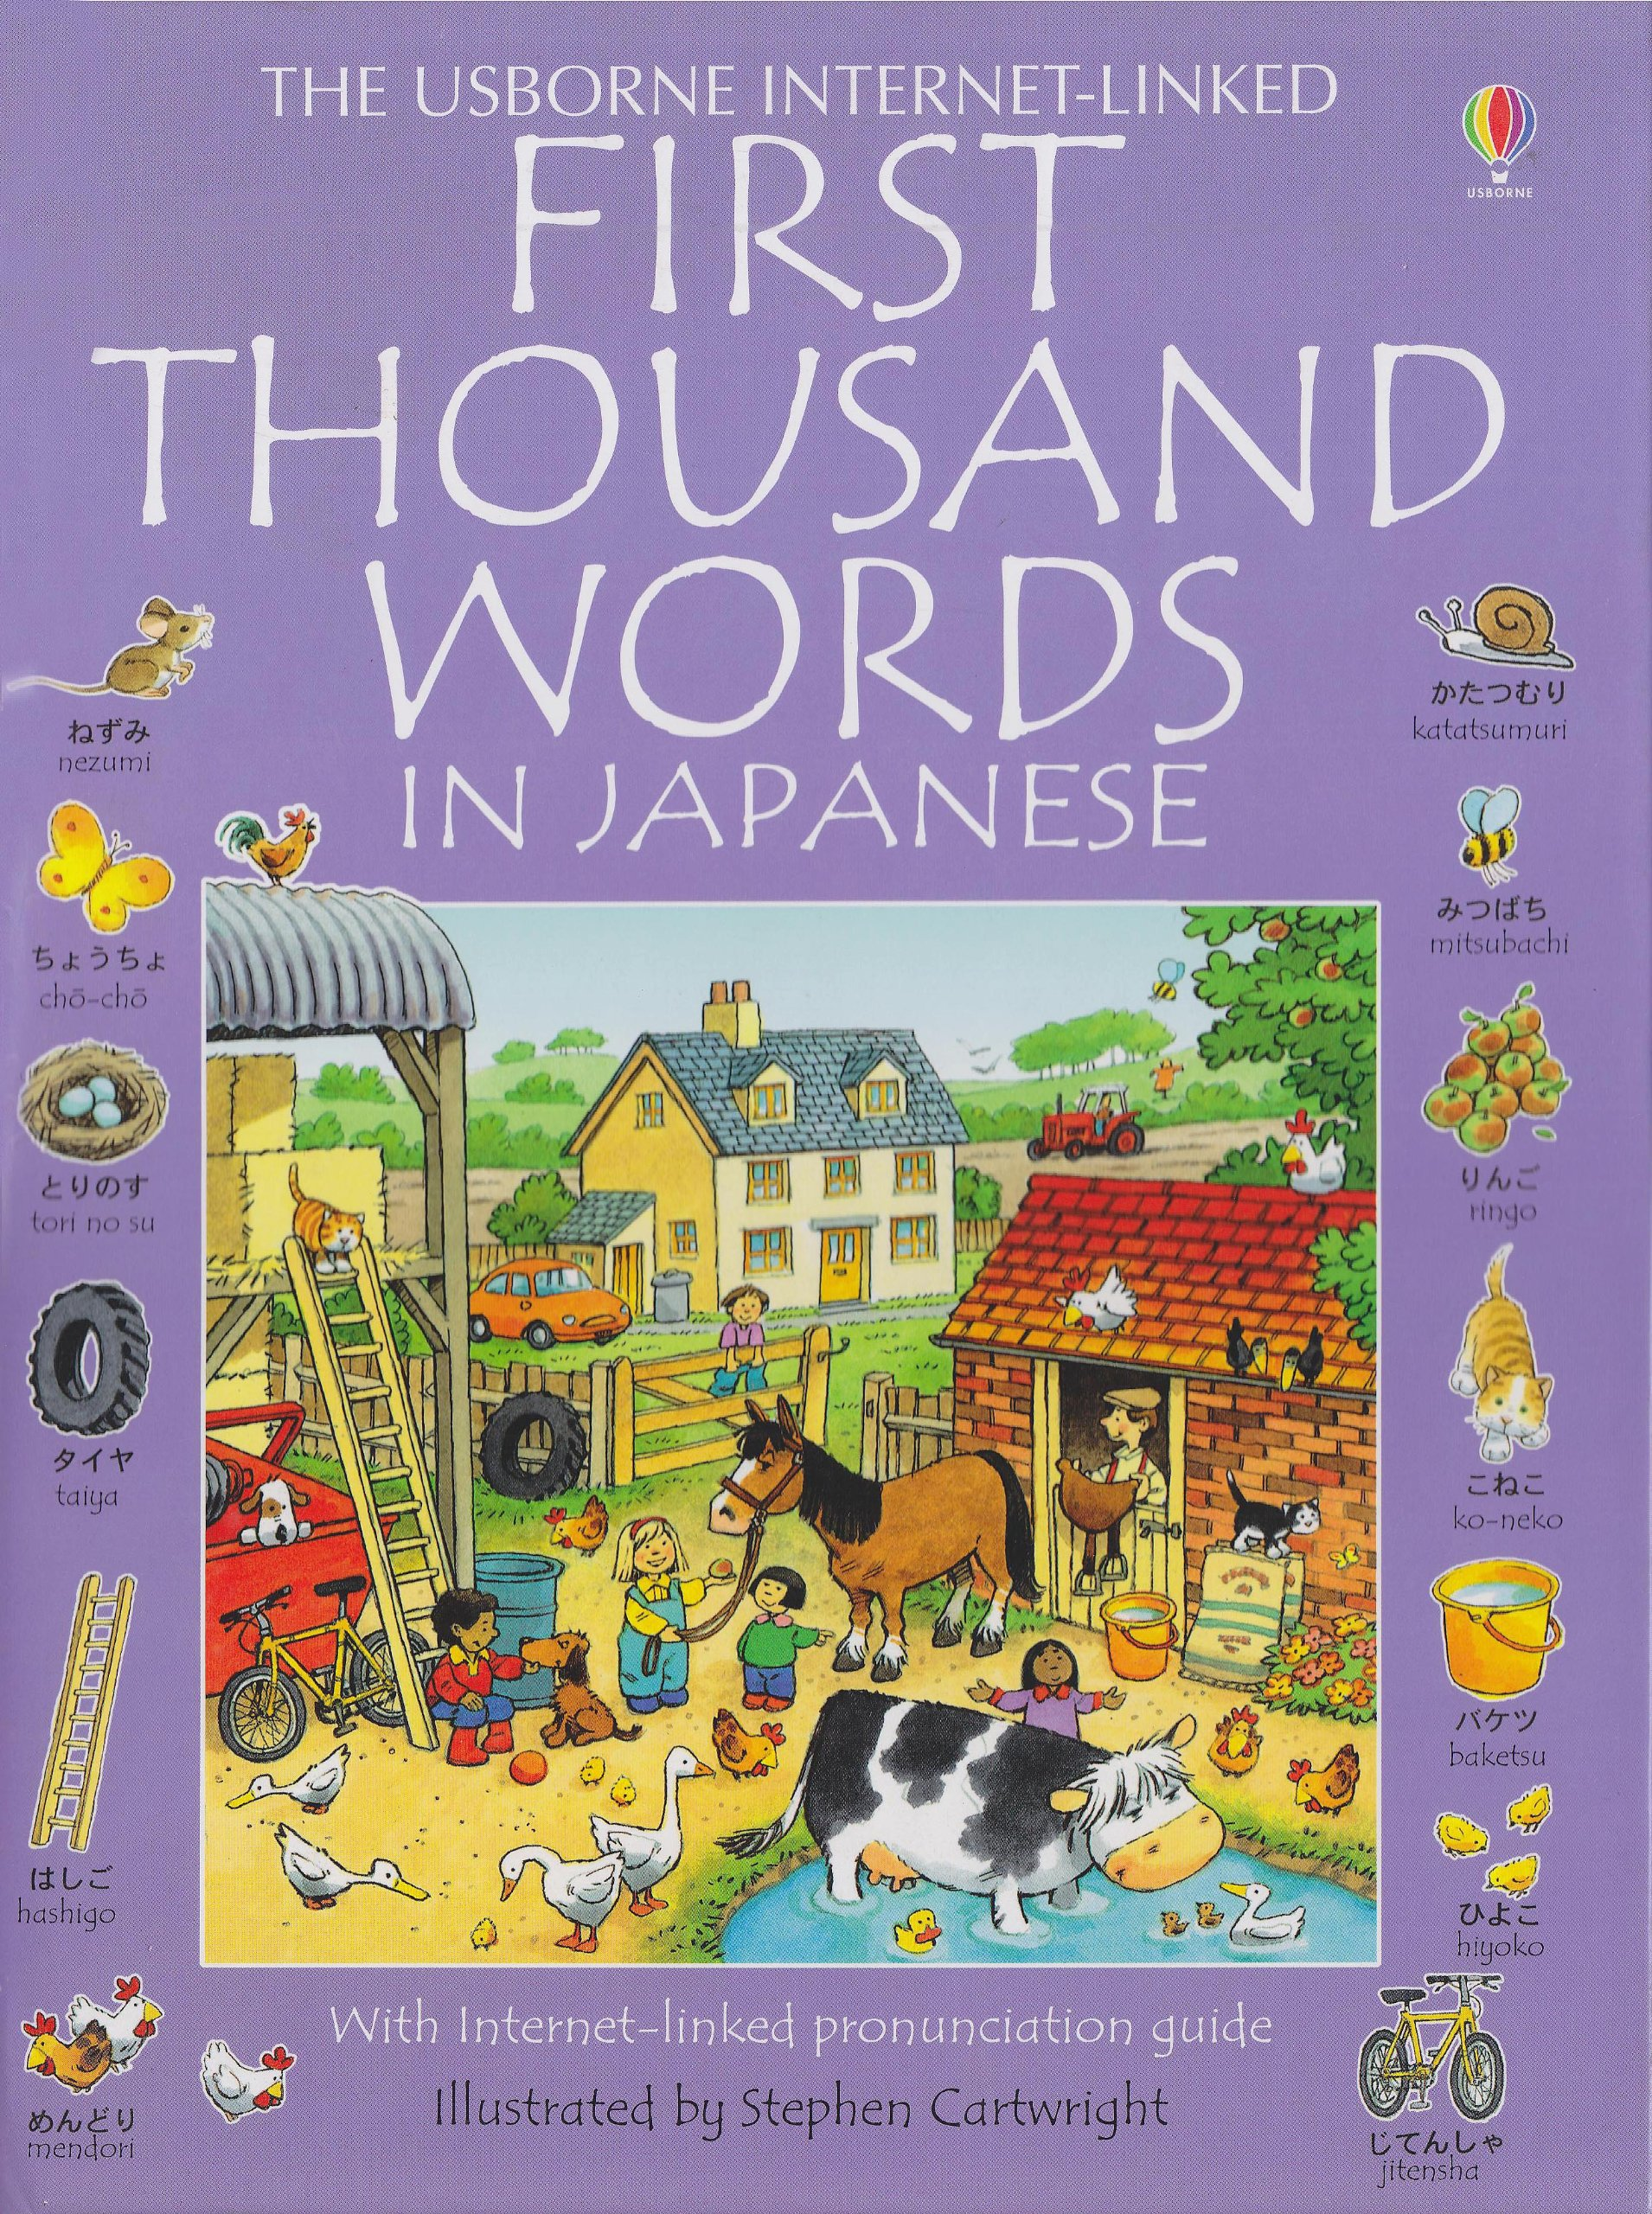 First Thousand Words in Japanese: With Internet-Linked Pronunciation Guide (Japanese Edition)